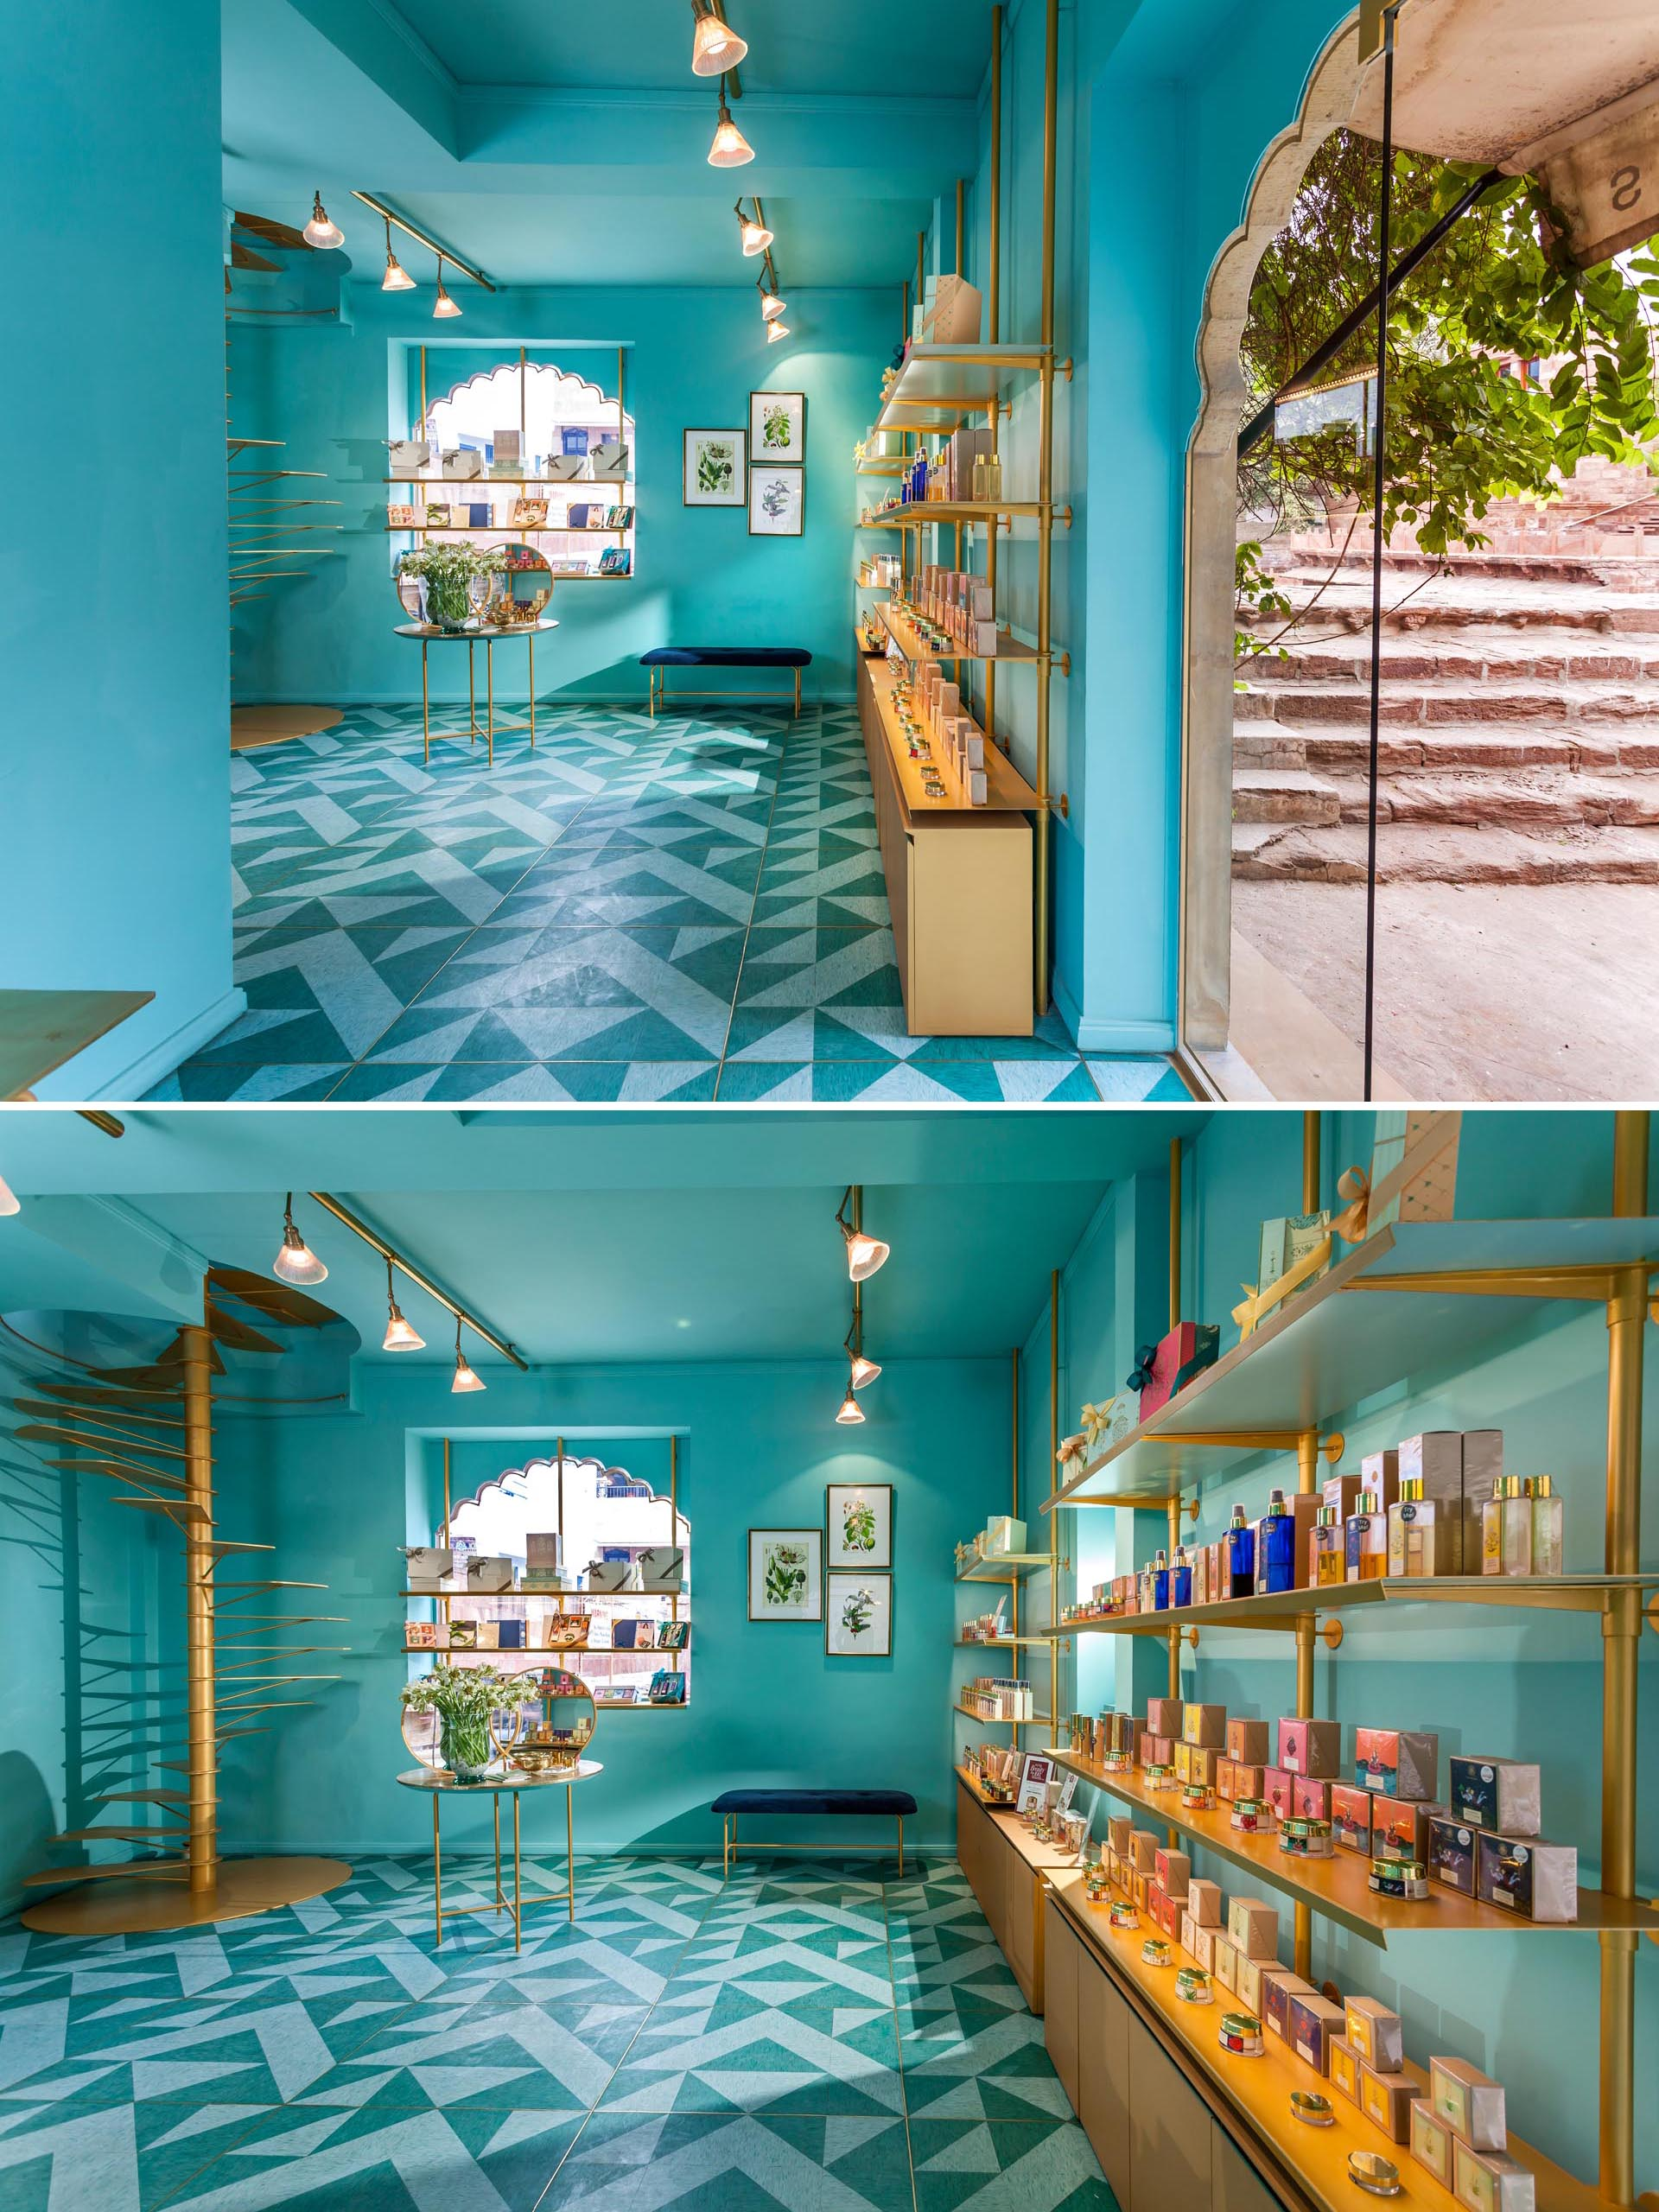 A modern retail store with teal blue walls, gold accents, and patterned lino flooring.